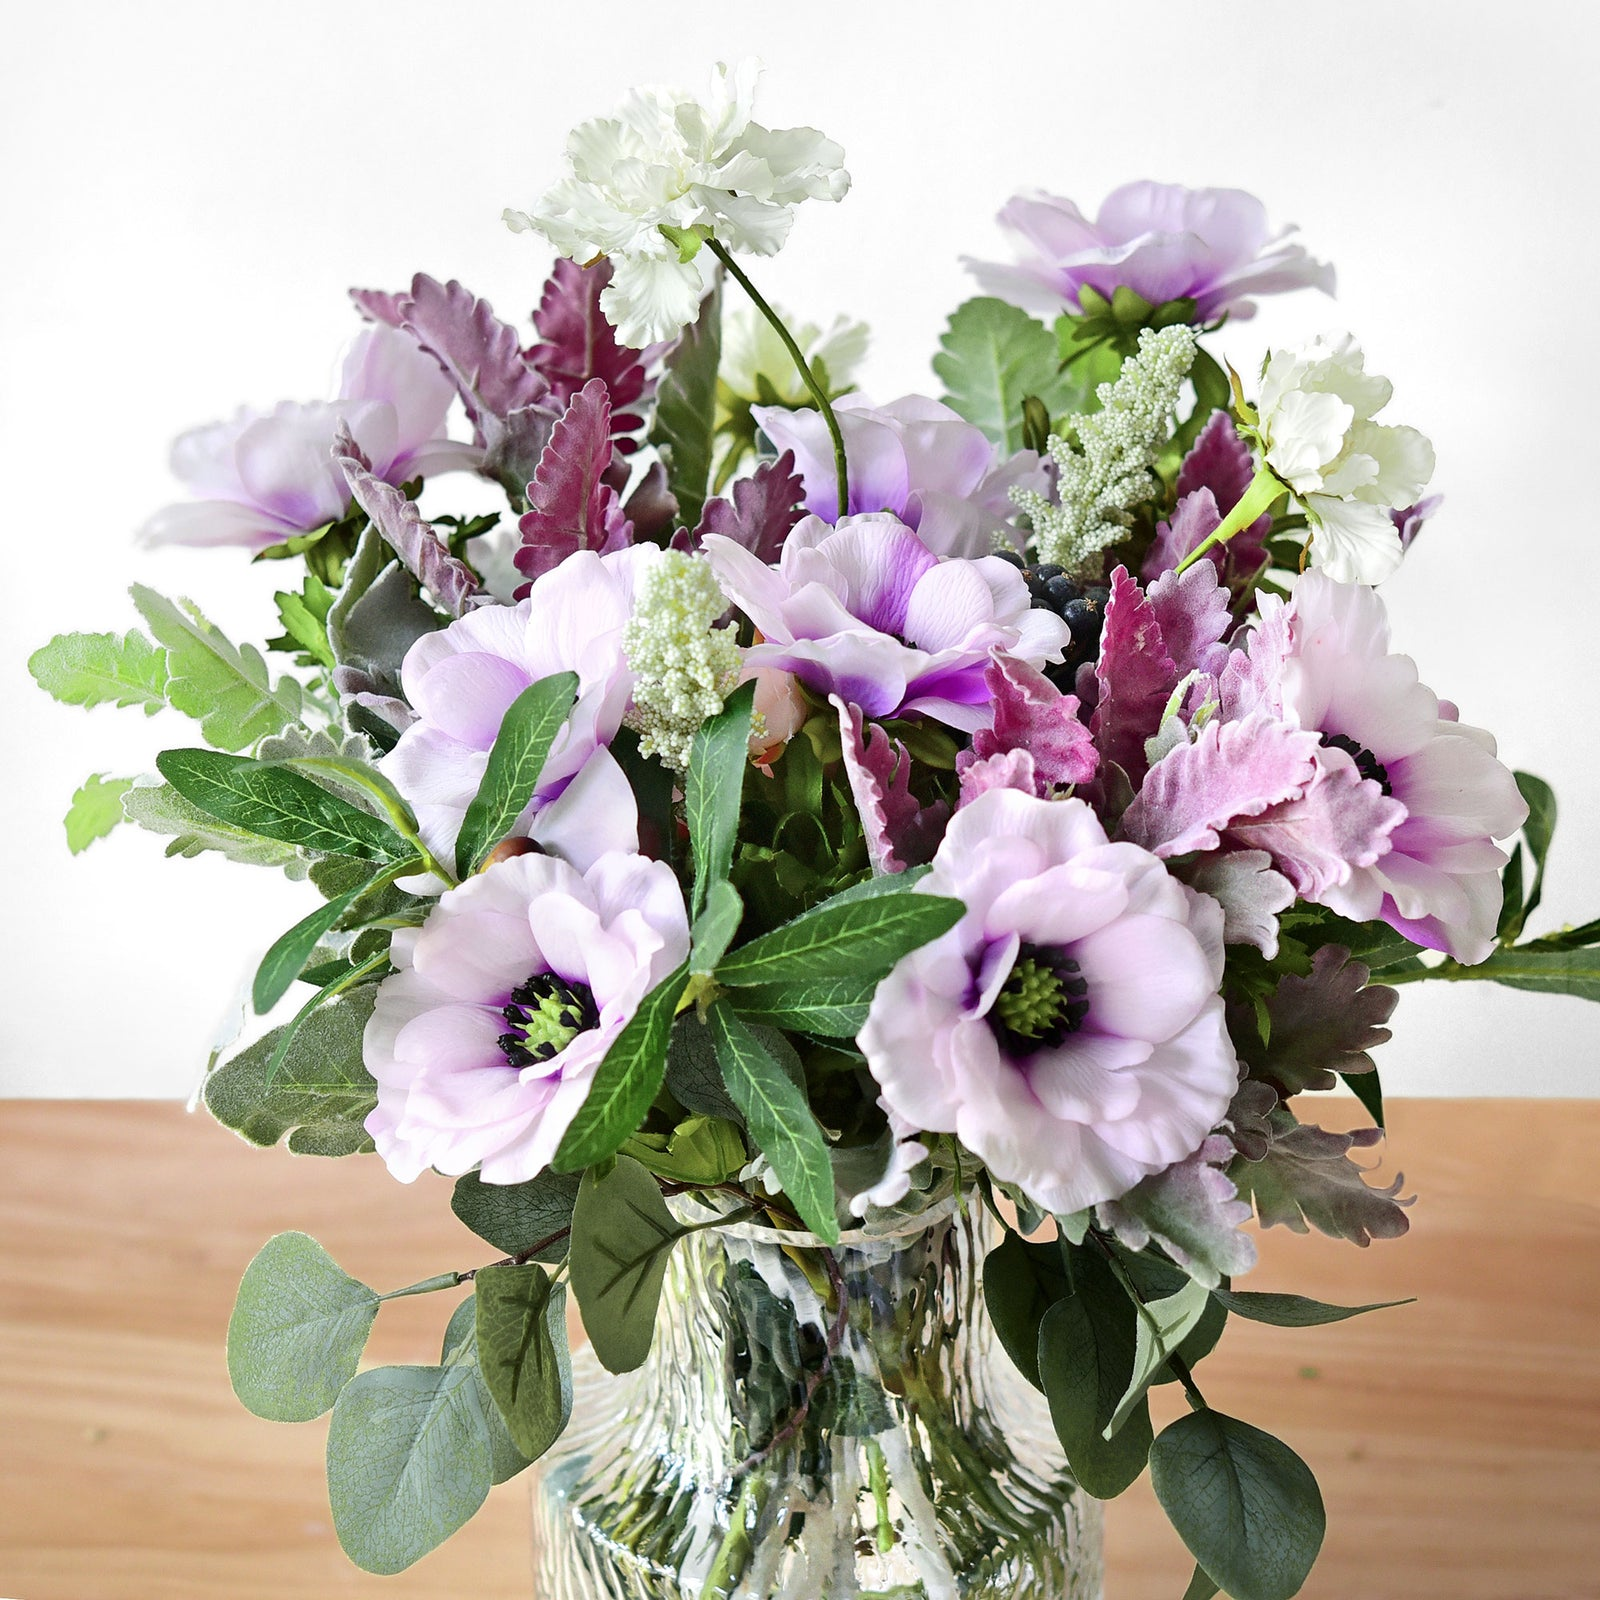 9 Long Stems of 'Real Touch' (Violet Purple) Artificial Anemone Silk Flowers with Leaves 48cm (18.9 inches)